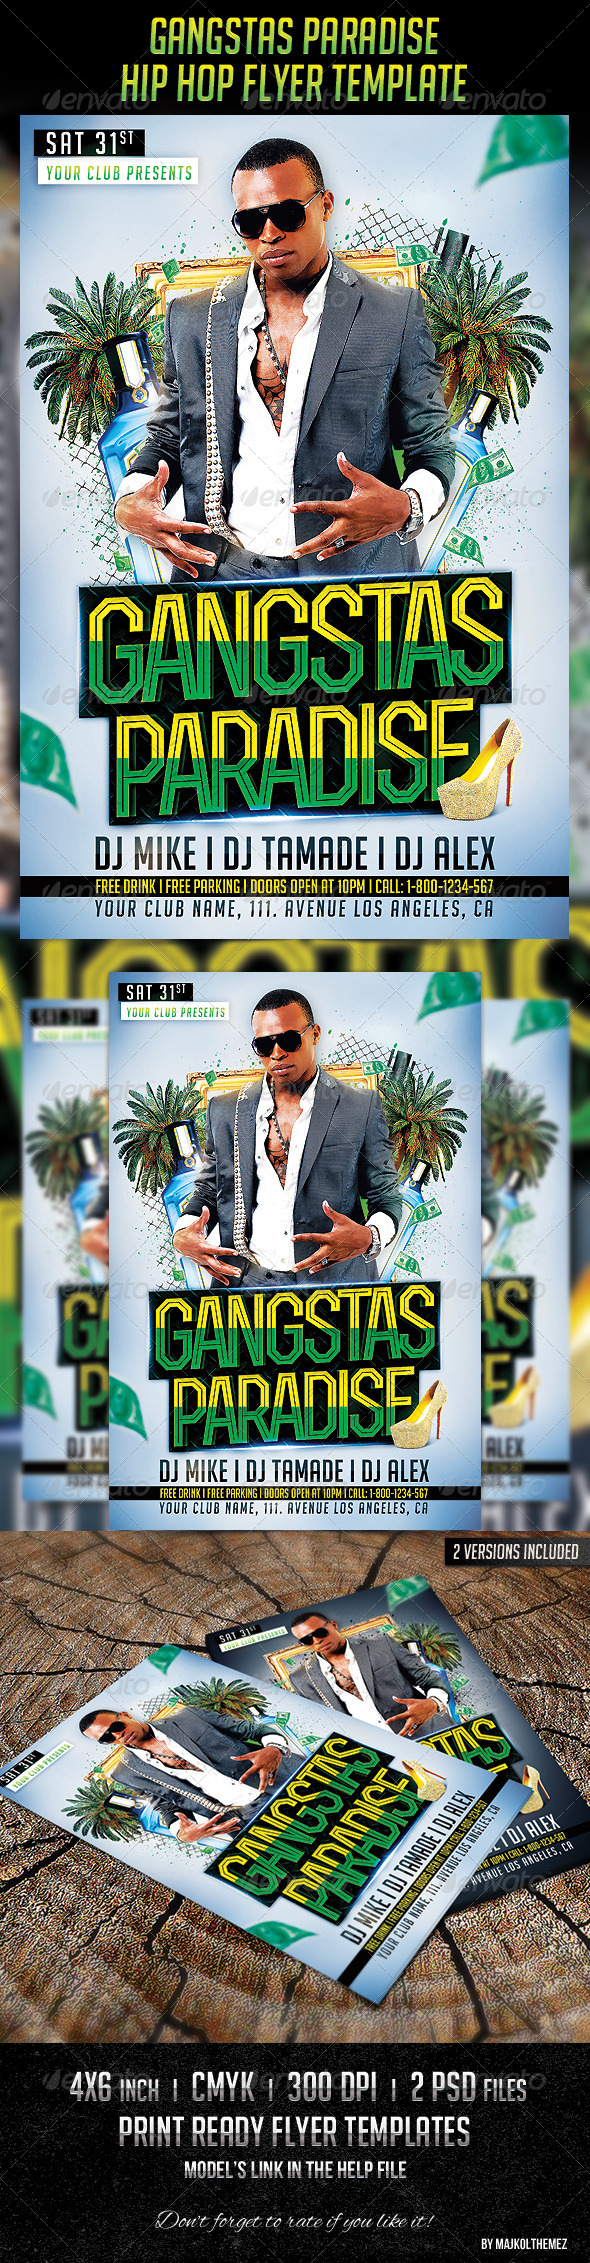 Gangstas Paradise Party Flyer Template  Party Flyer Flyer